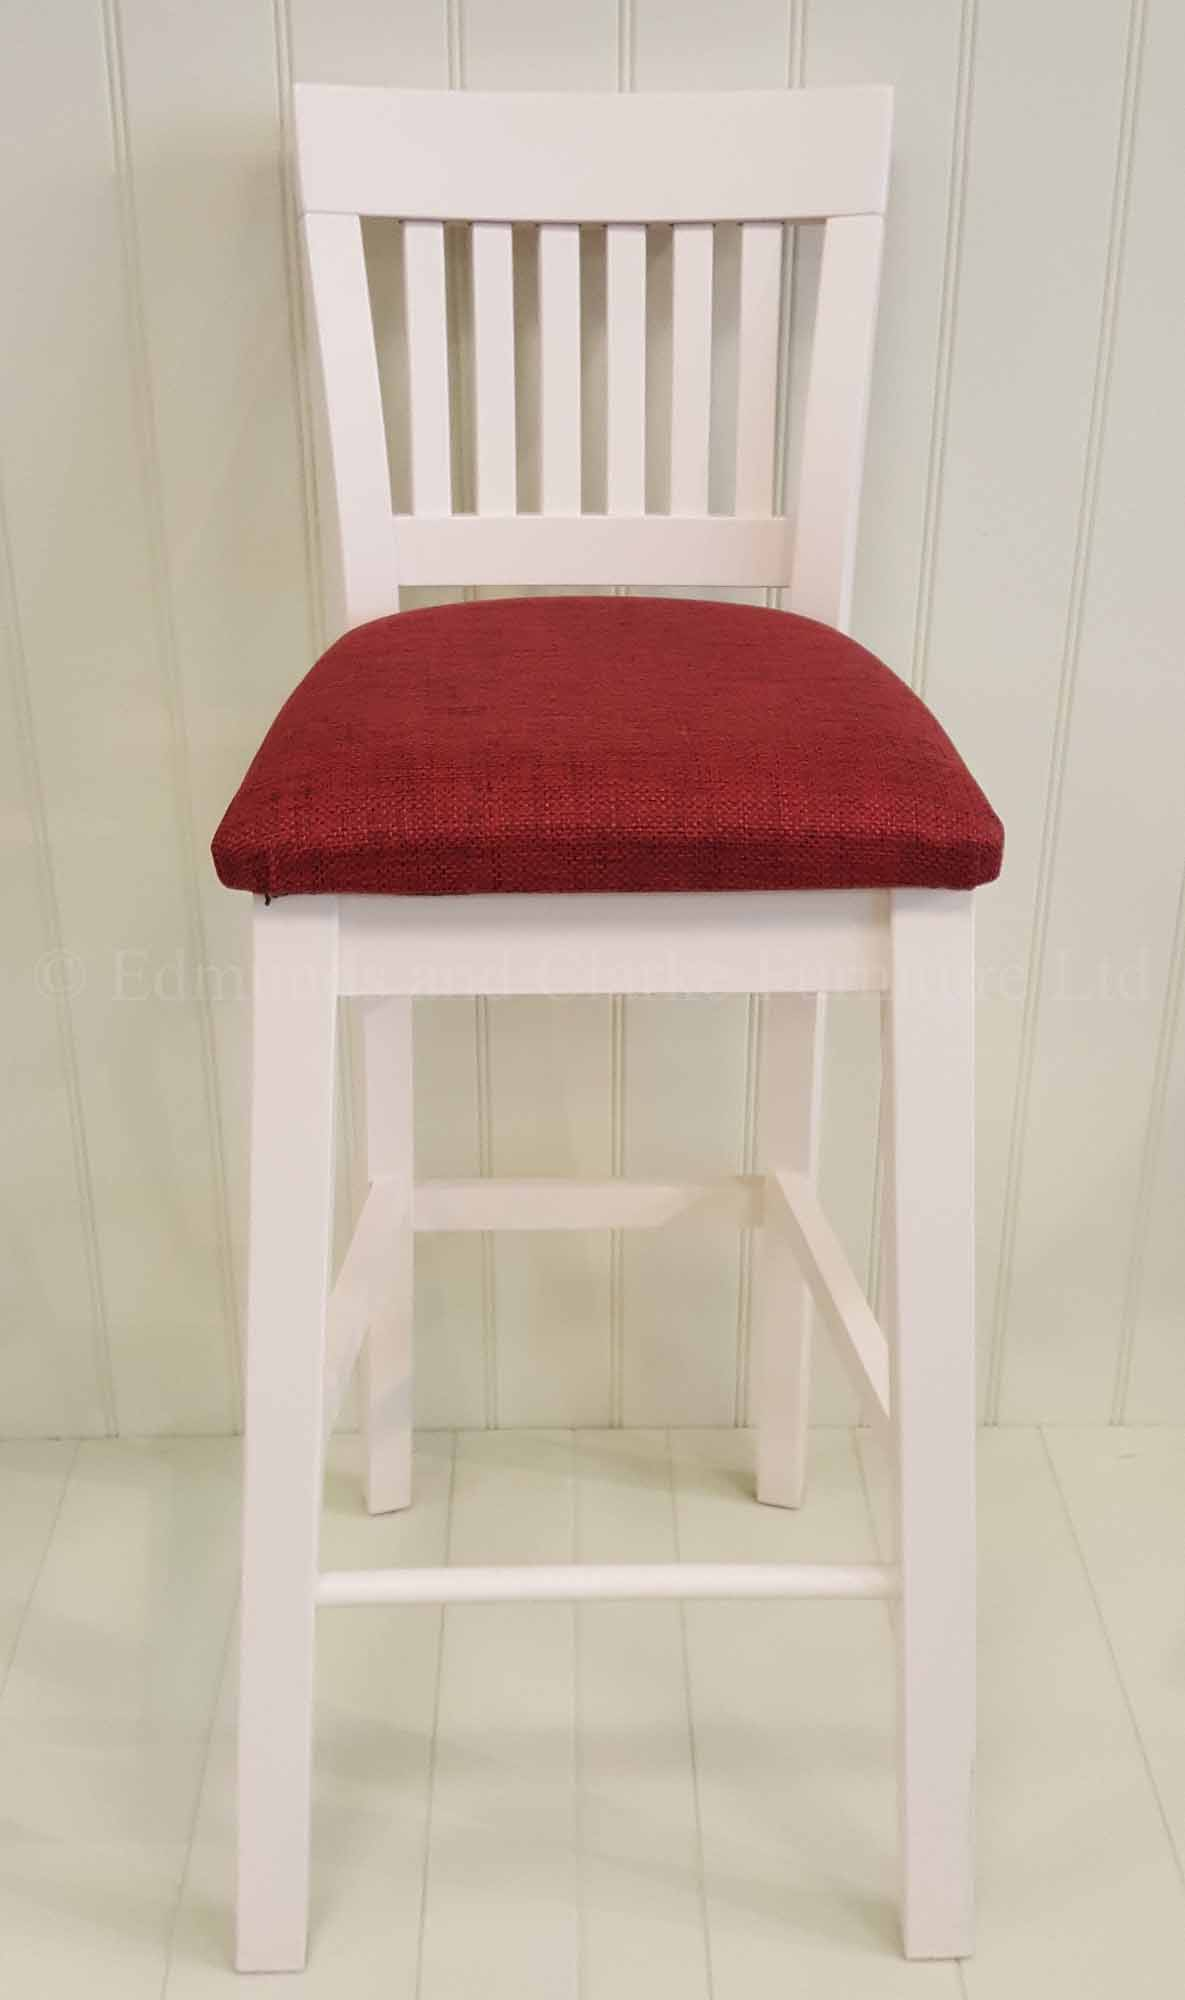 Linden kitchen high bar stool, painted white with red fabric seat